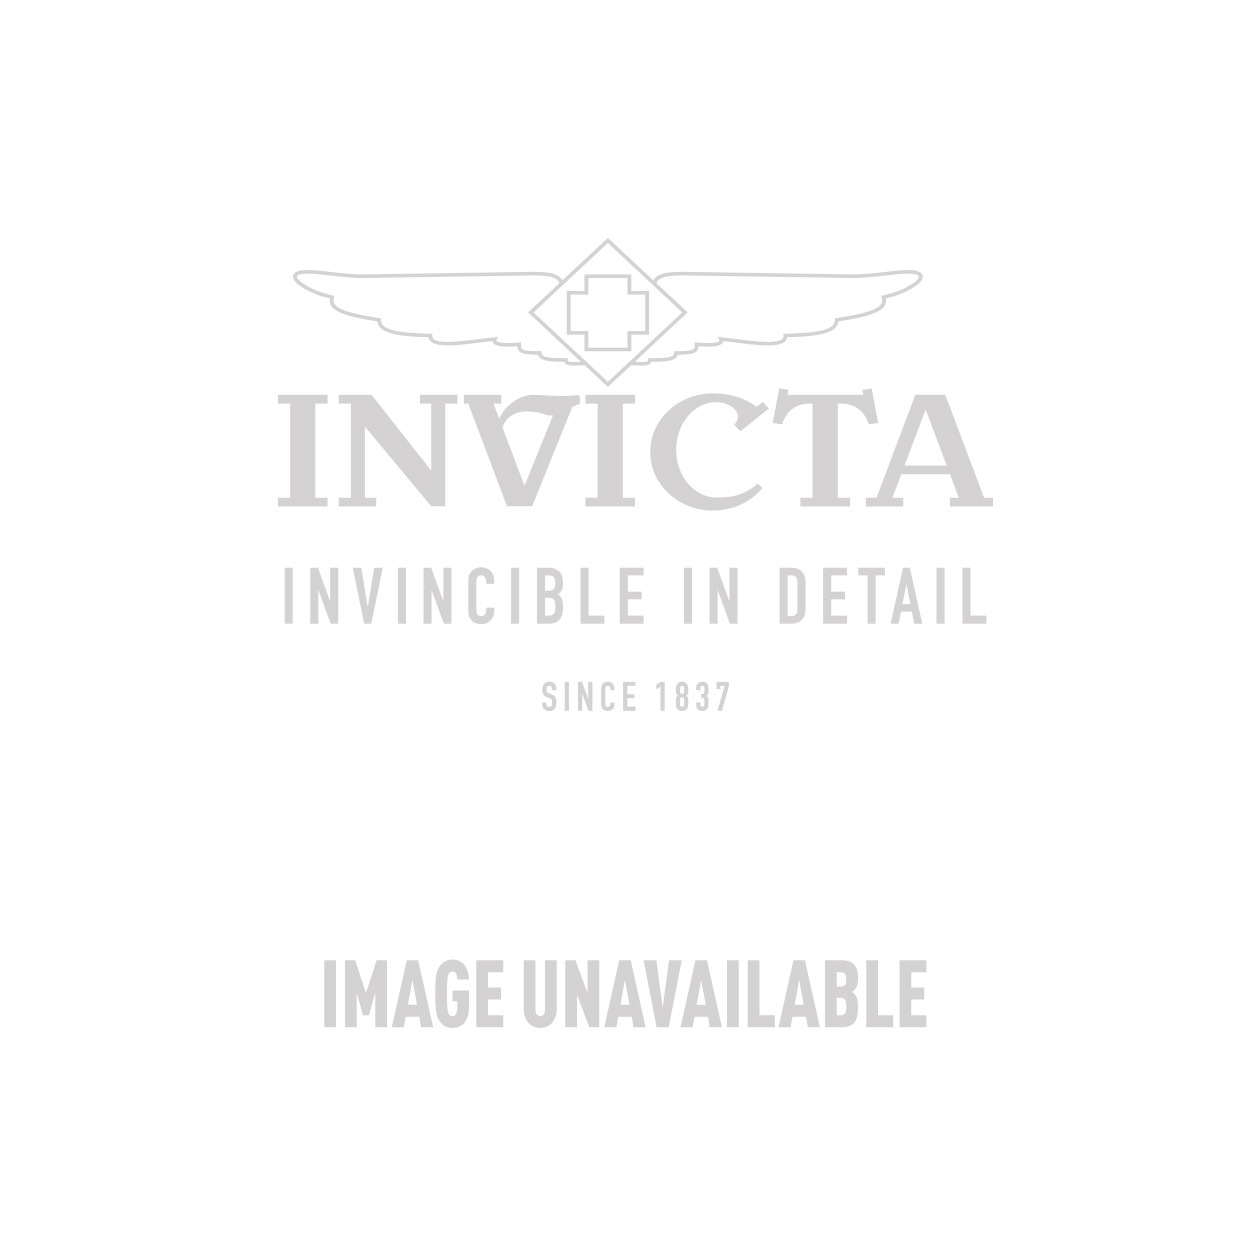 Invicta Reserve Aviator Quartz Watch - Stainless Steel case with Grey tone  Leather band - Model 19750